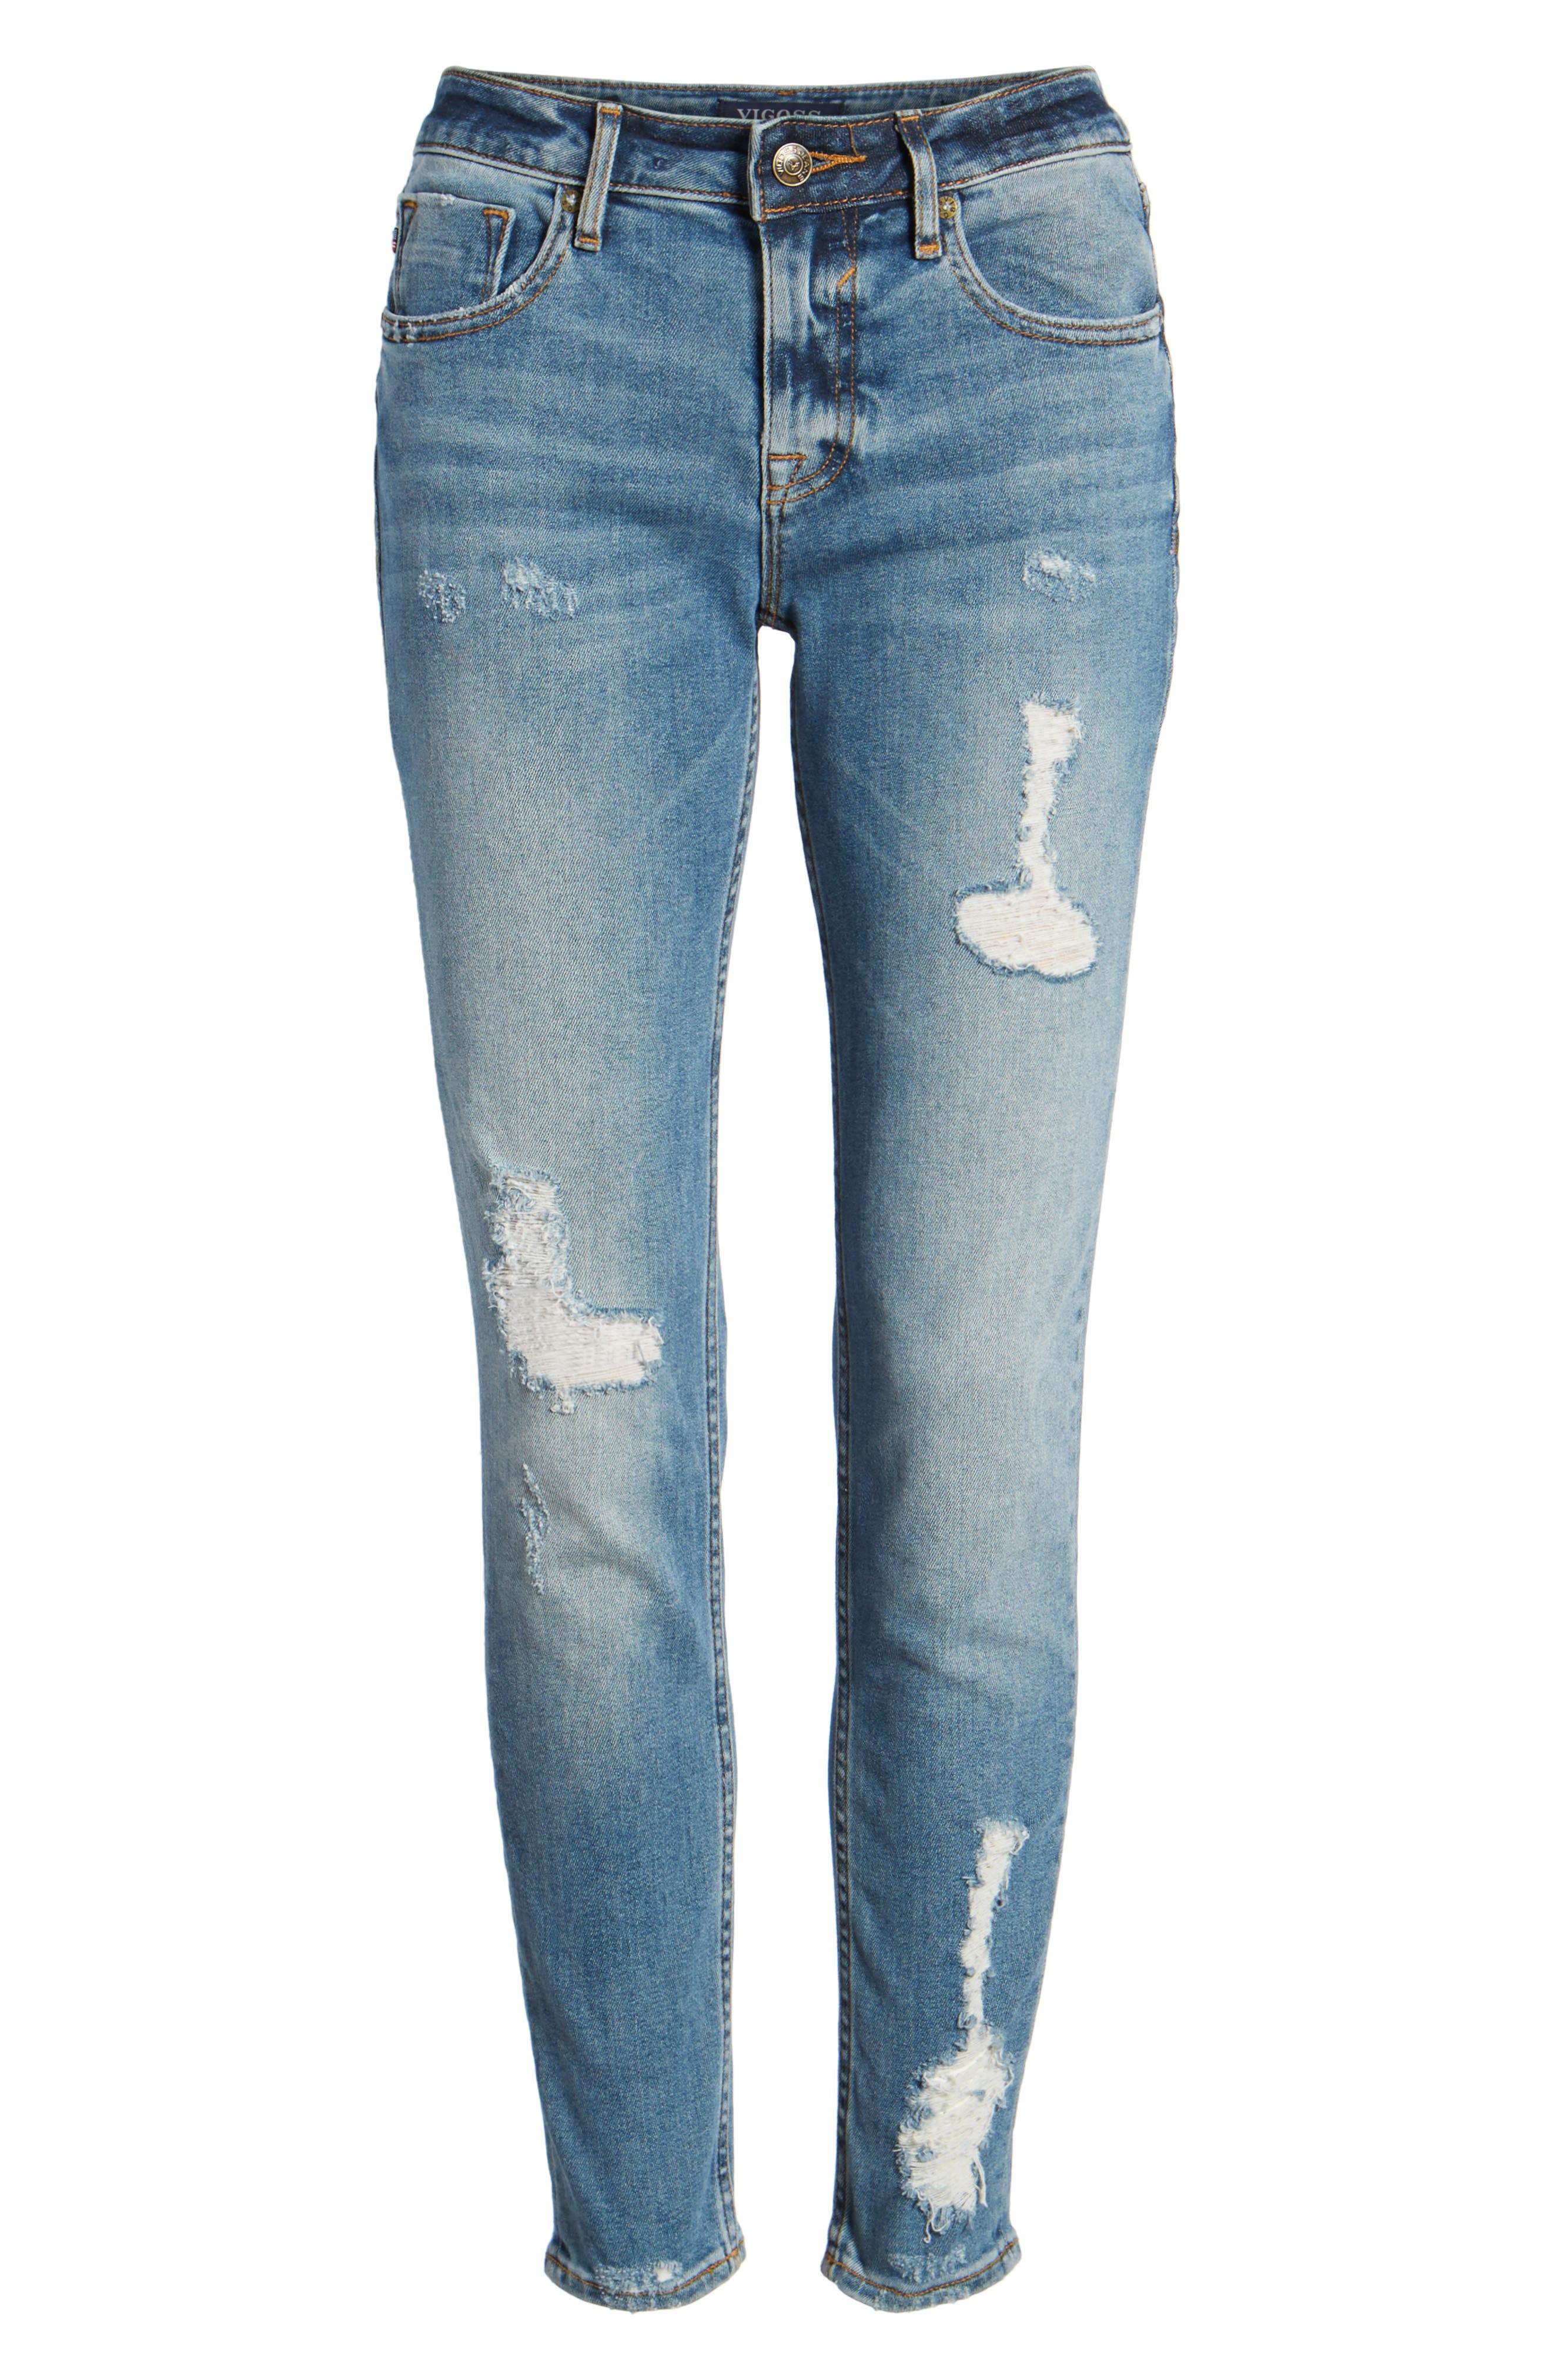 Jagger Decon Distressed Skinny Jeans,                             Alternate thumbnail 7, color,                             426